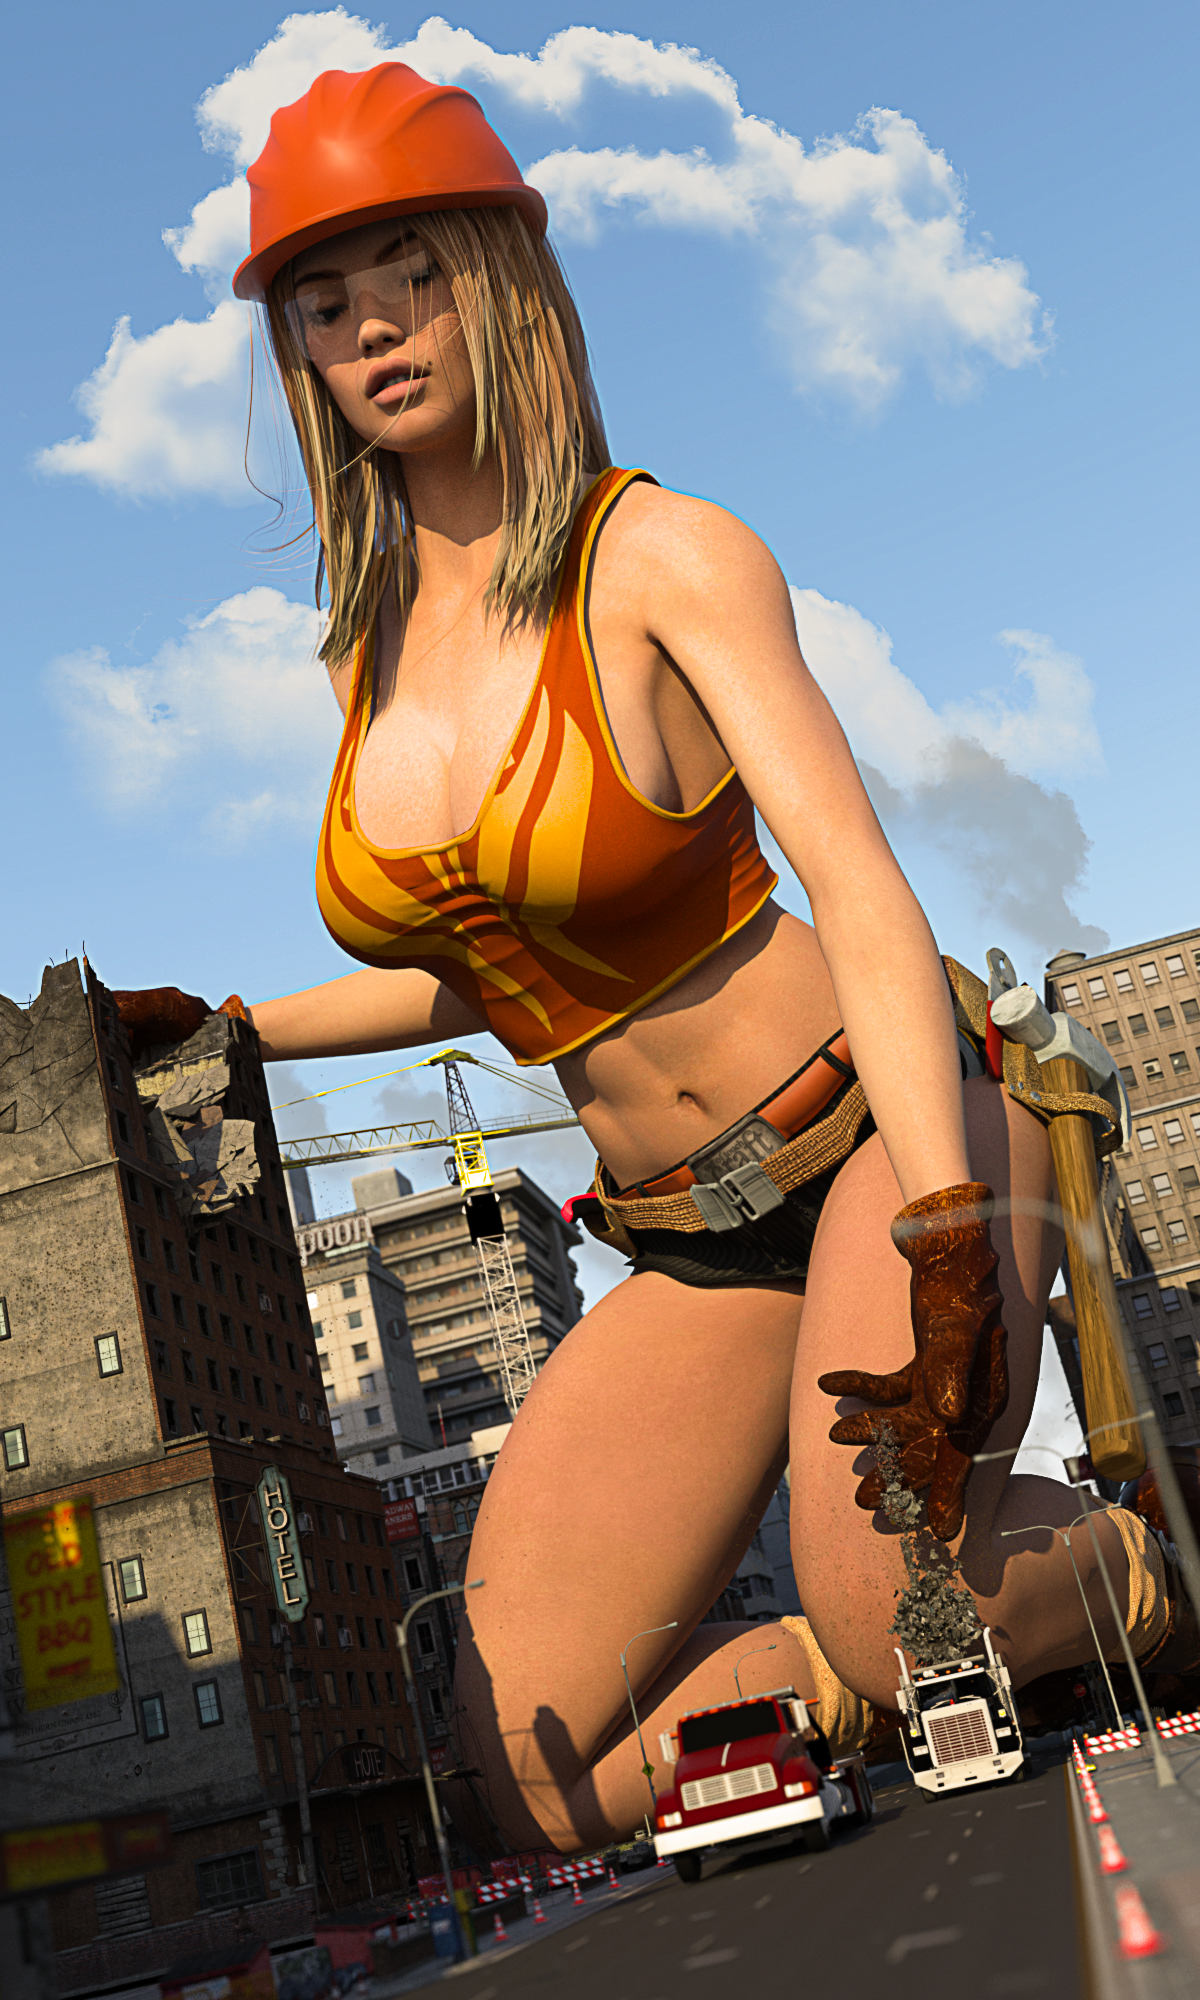 162815 - buildings building_demolition city cleavage clouds construction demolition giantess hard_hat low_angle mike973 poser safety_glasses sky street trucks